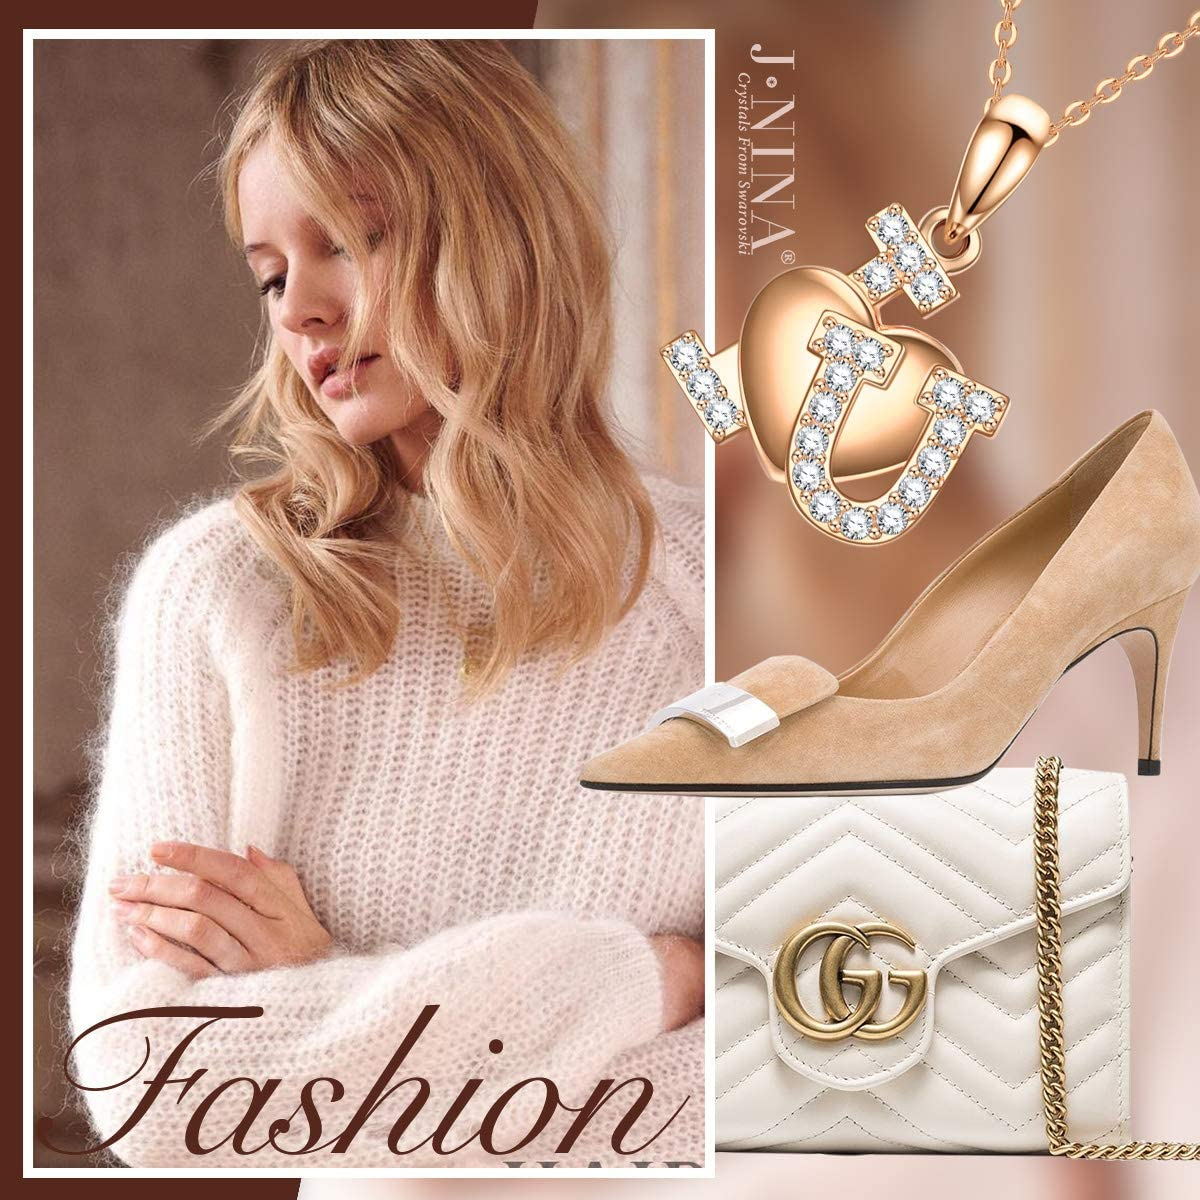 J.NINA Necklaces for Women I Love You Women Christmas Necklace Gifts Hypoallergenic Jewelry Fashion Heart Pendant Necklace with Luxury Packaging